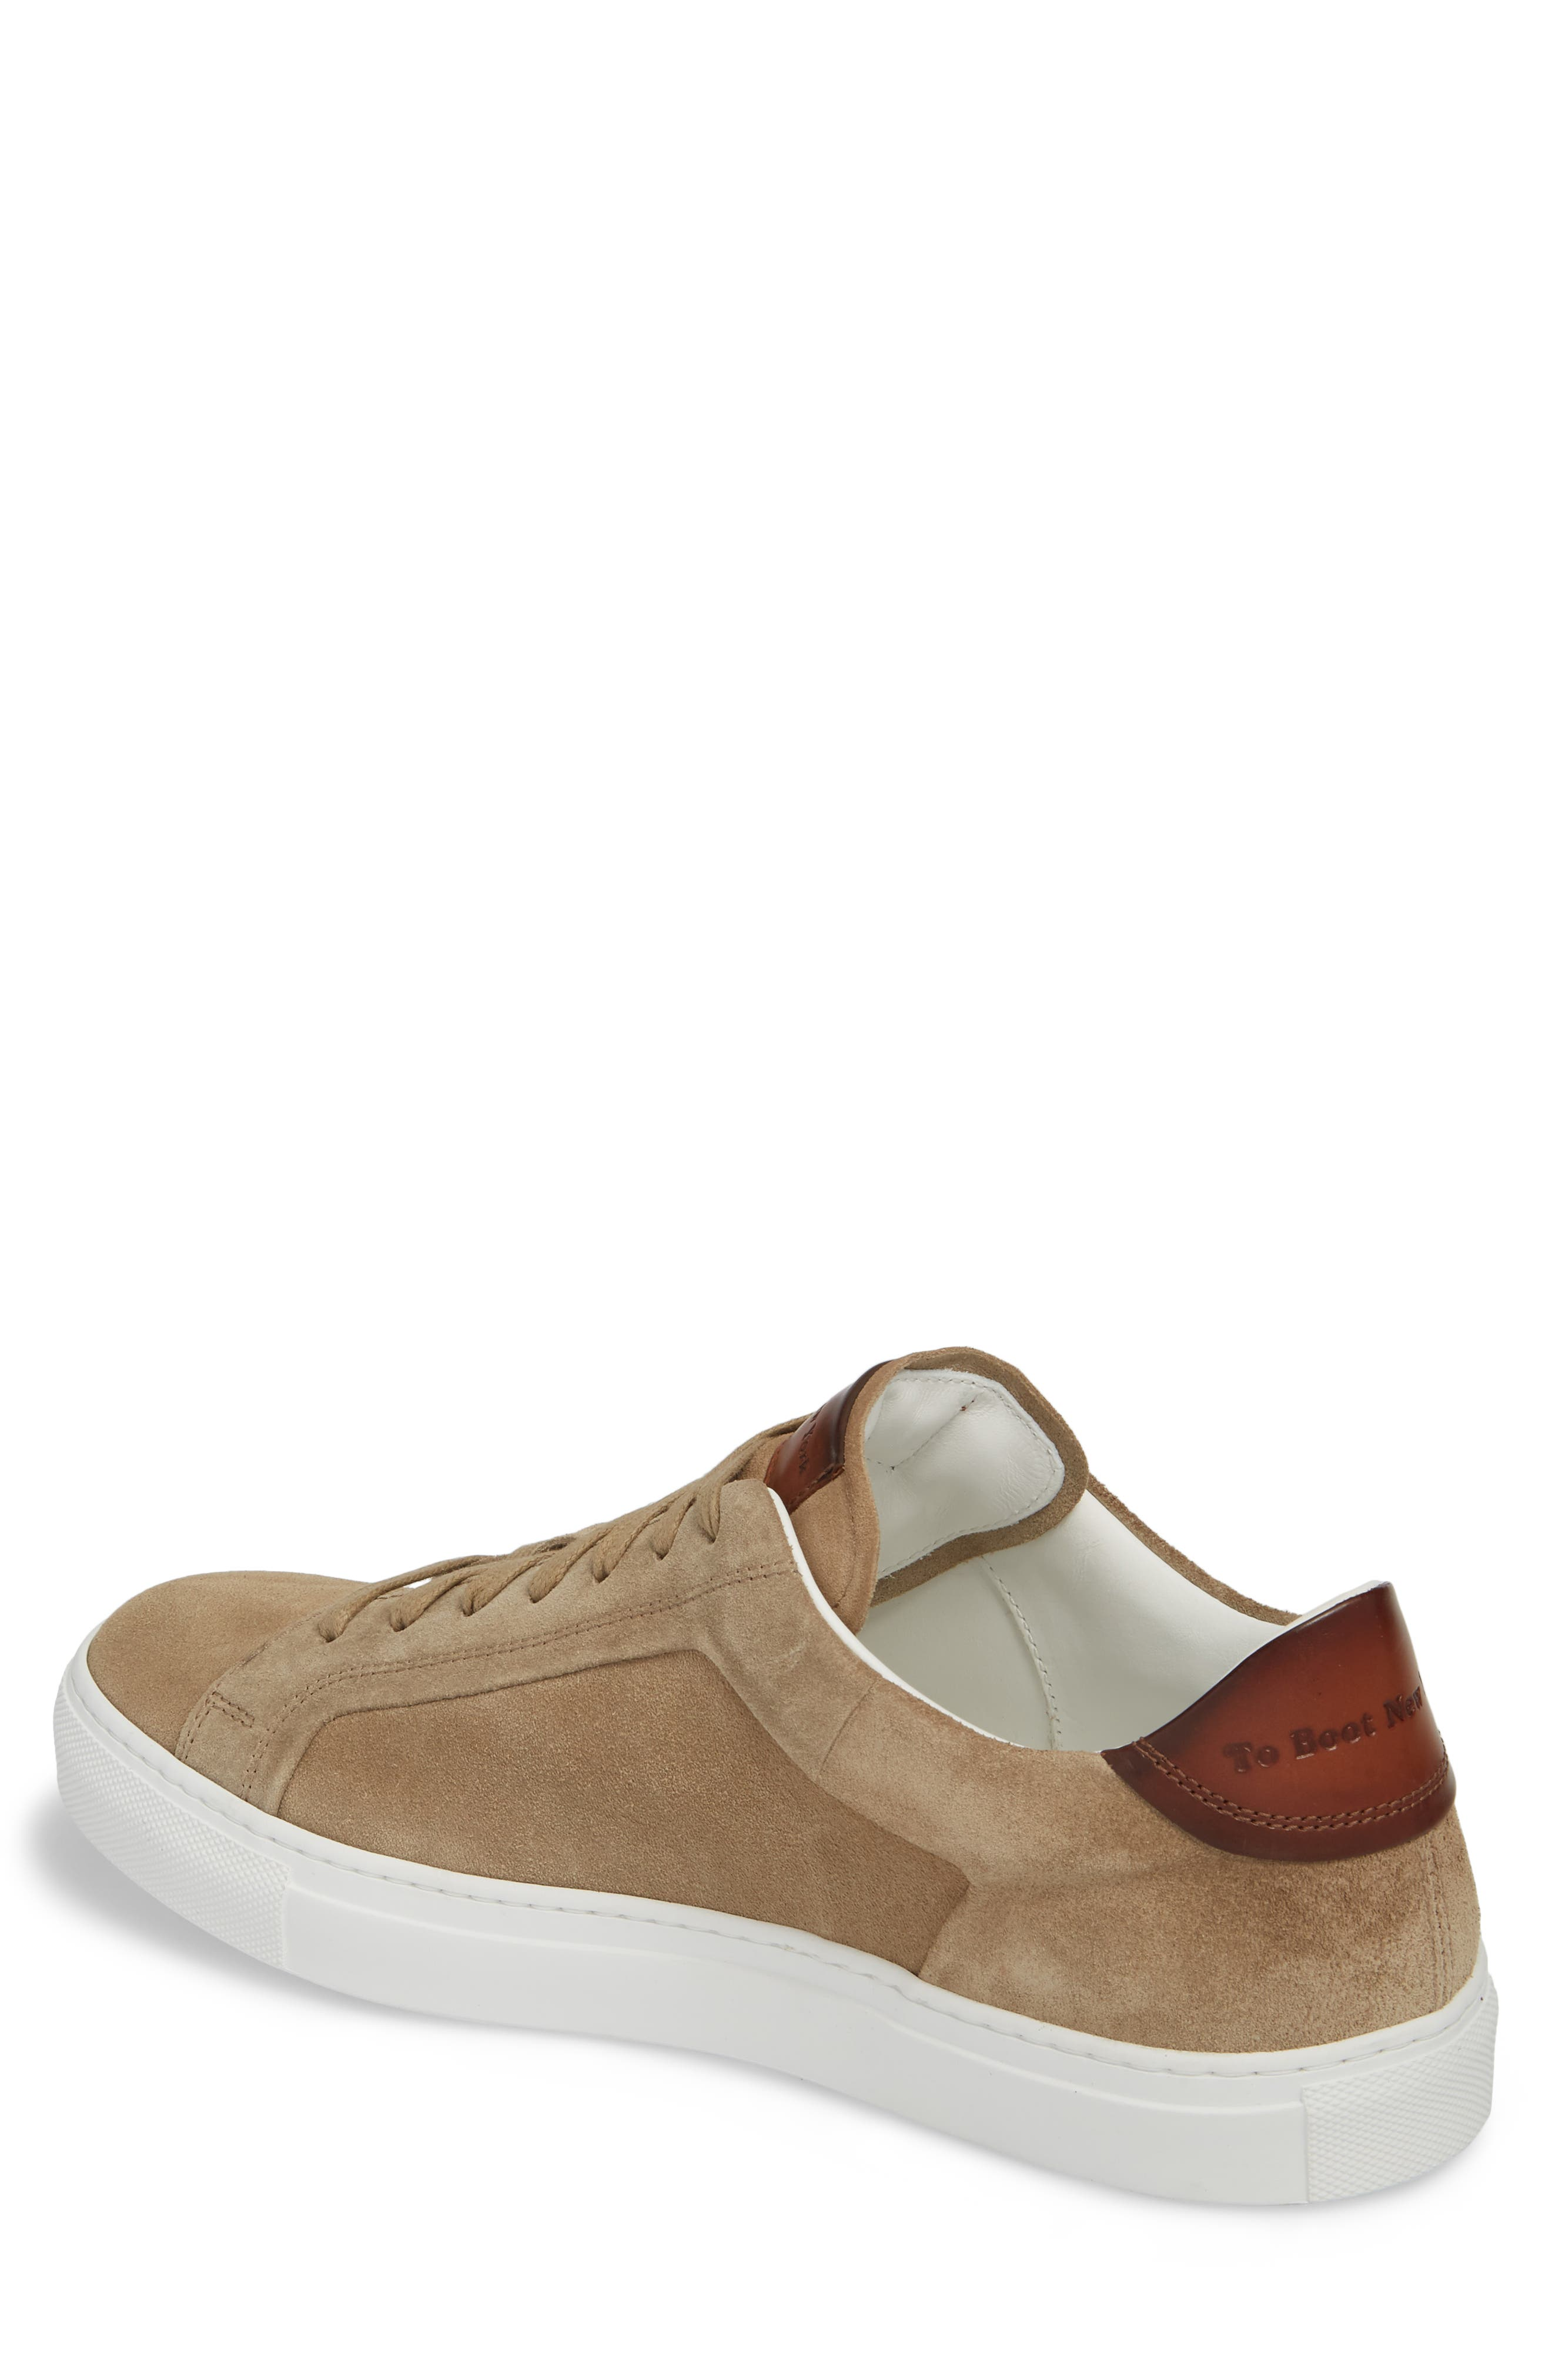 Britt Low Top Sneaker,                             Alternate thumbnail 2, color,                             Tan Suede